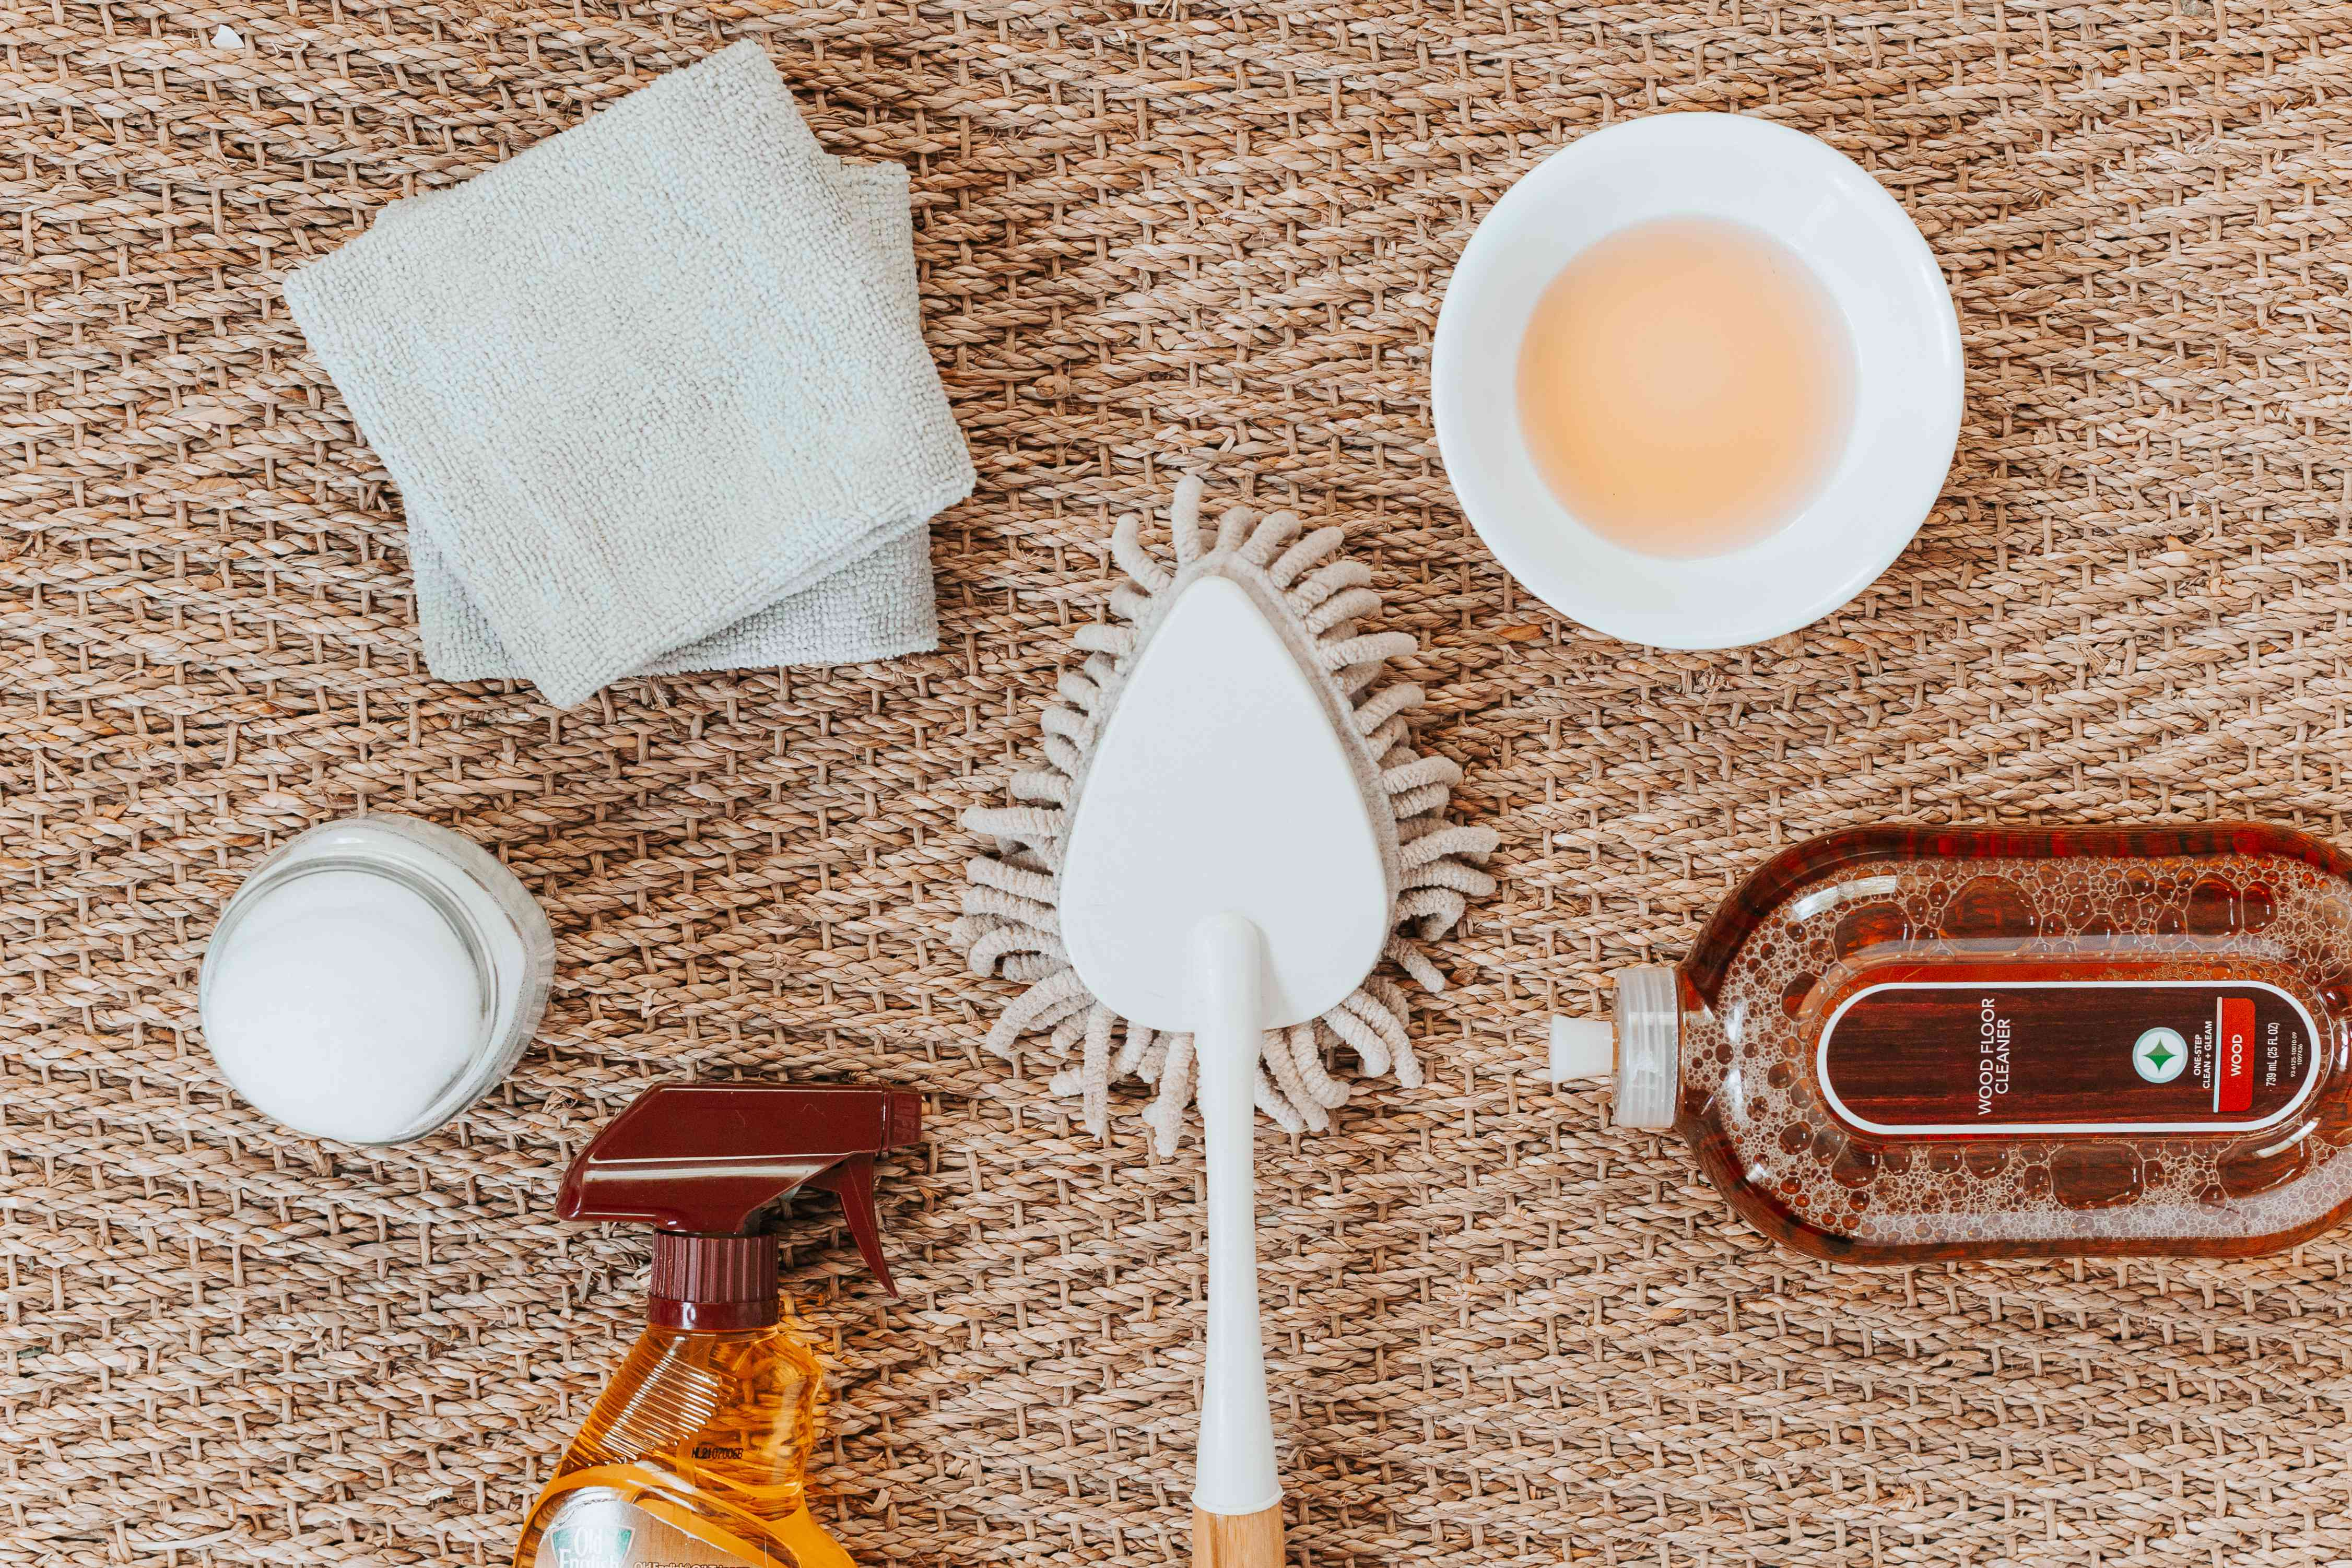 Materials and tools to clean wooden blinds